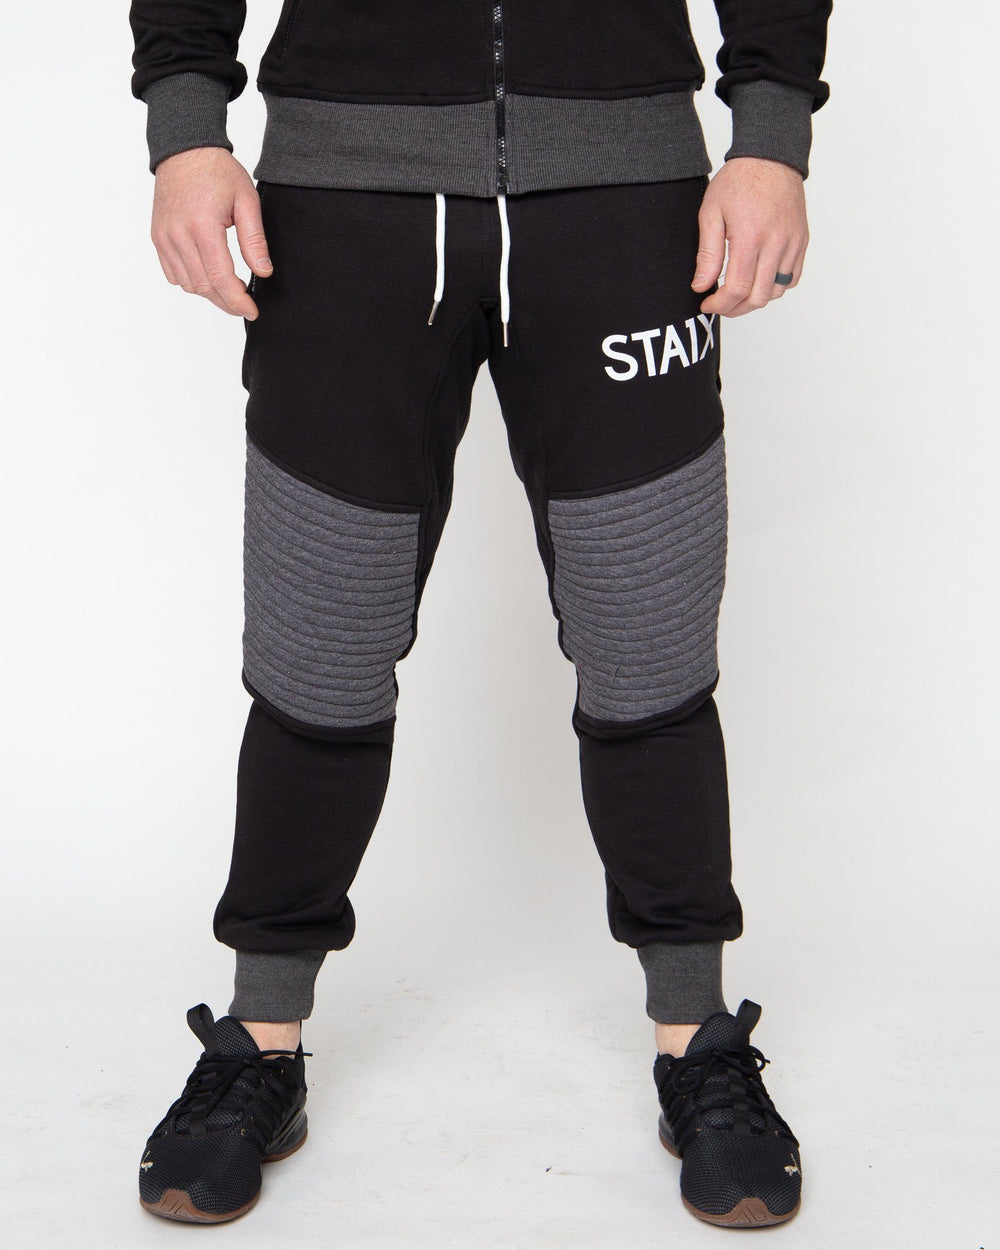 VALOR SWEATS STAIX SMALL BLACK/GRAY